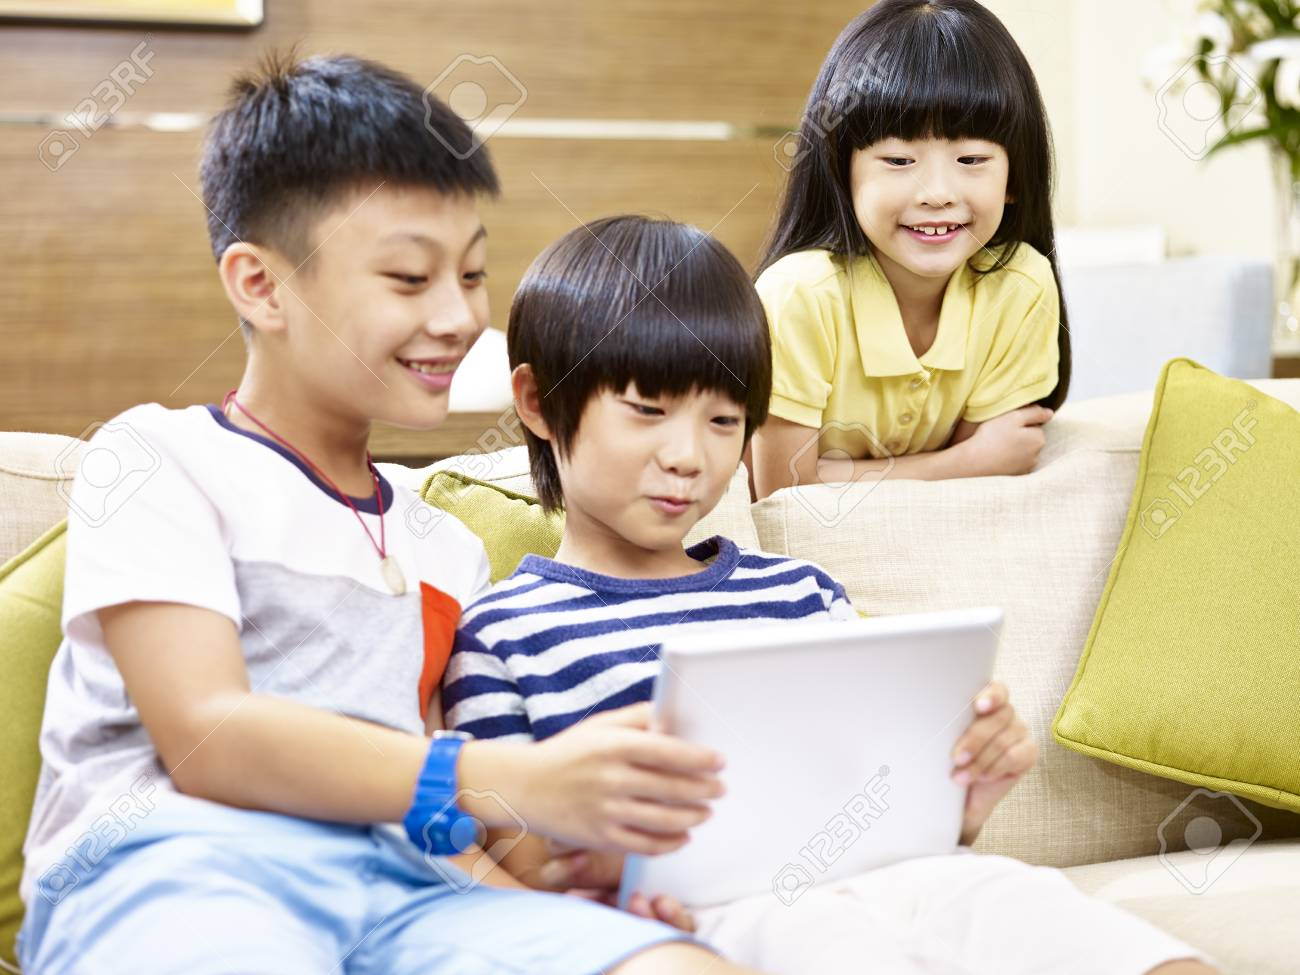 three asian children two little boy and one little girl sitting on couch at home playing video game with digital tablet, focus on the little girl in the back. - 92267957